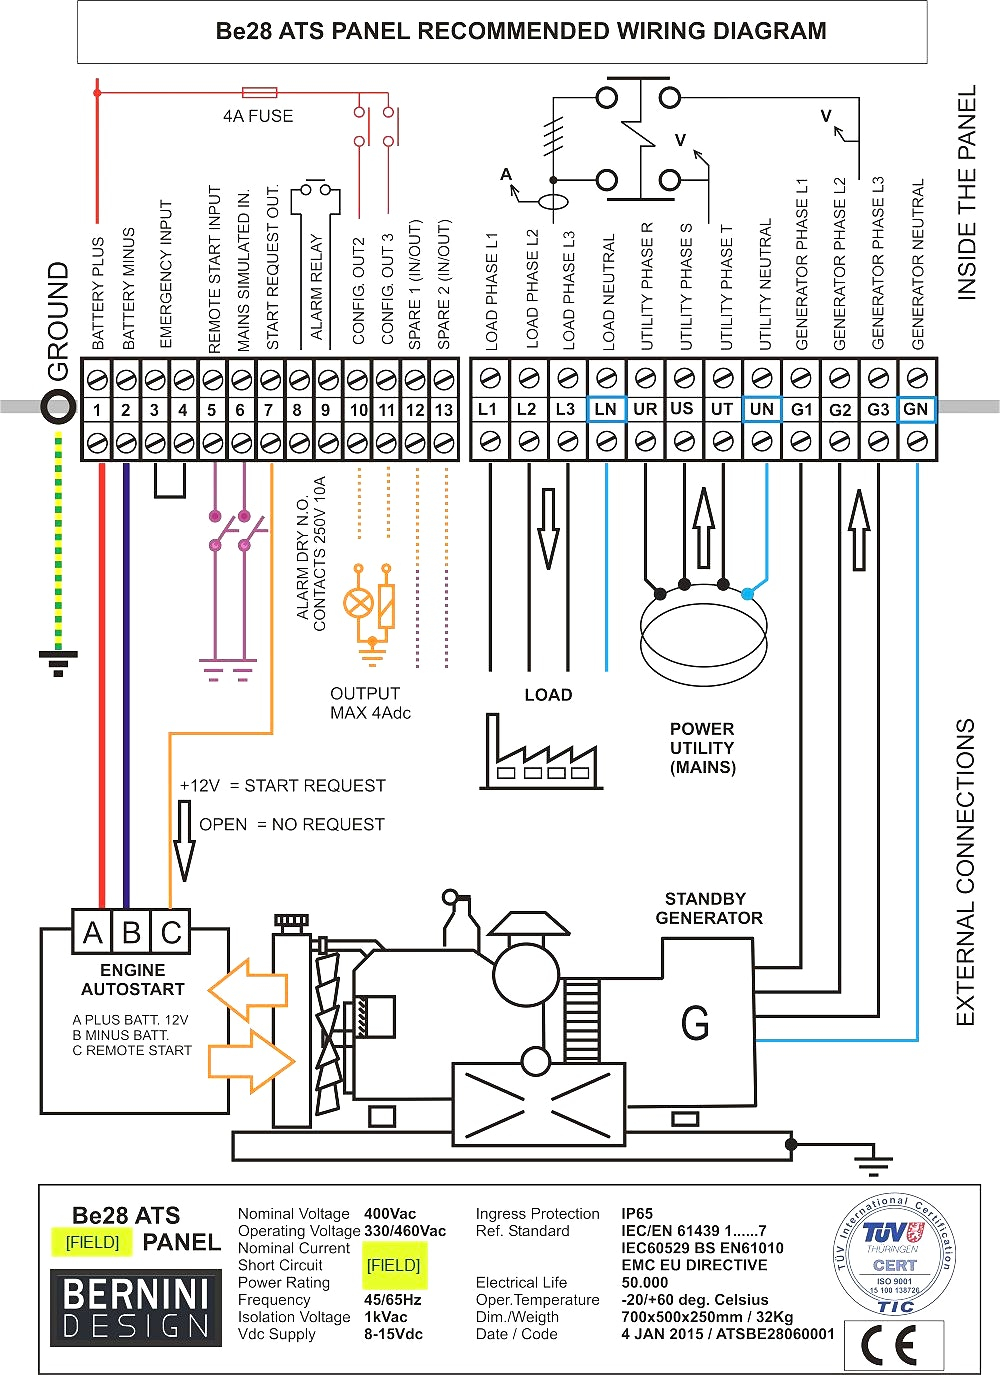 Generac 200 Amp Automatic Transfer Switch Wiring Diagram Gallery Main Breaker Panel A Collection Generator 11 Download